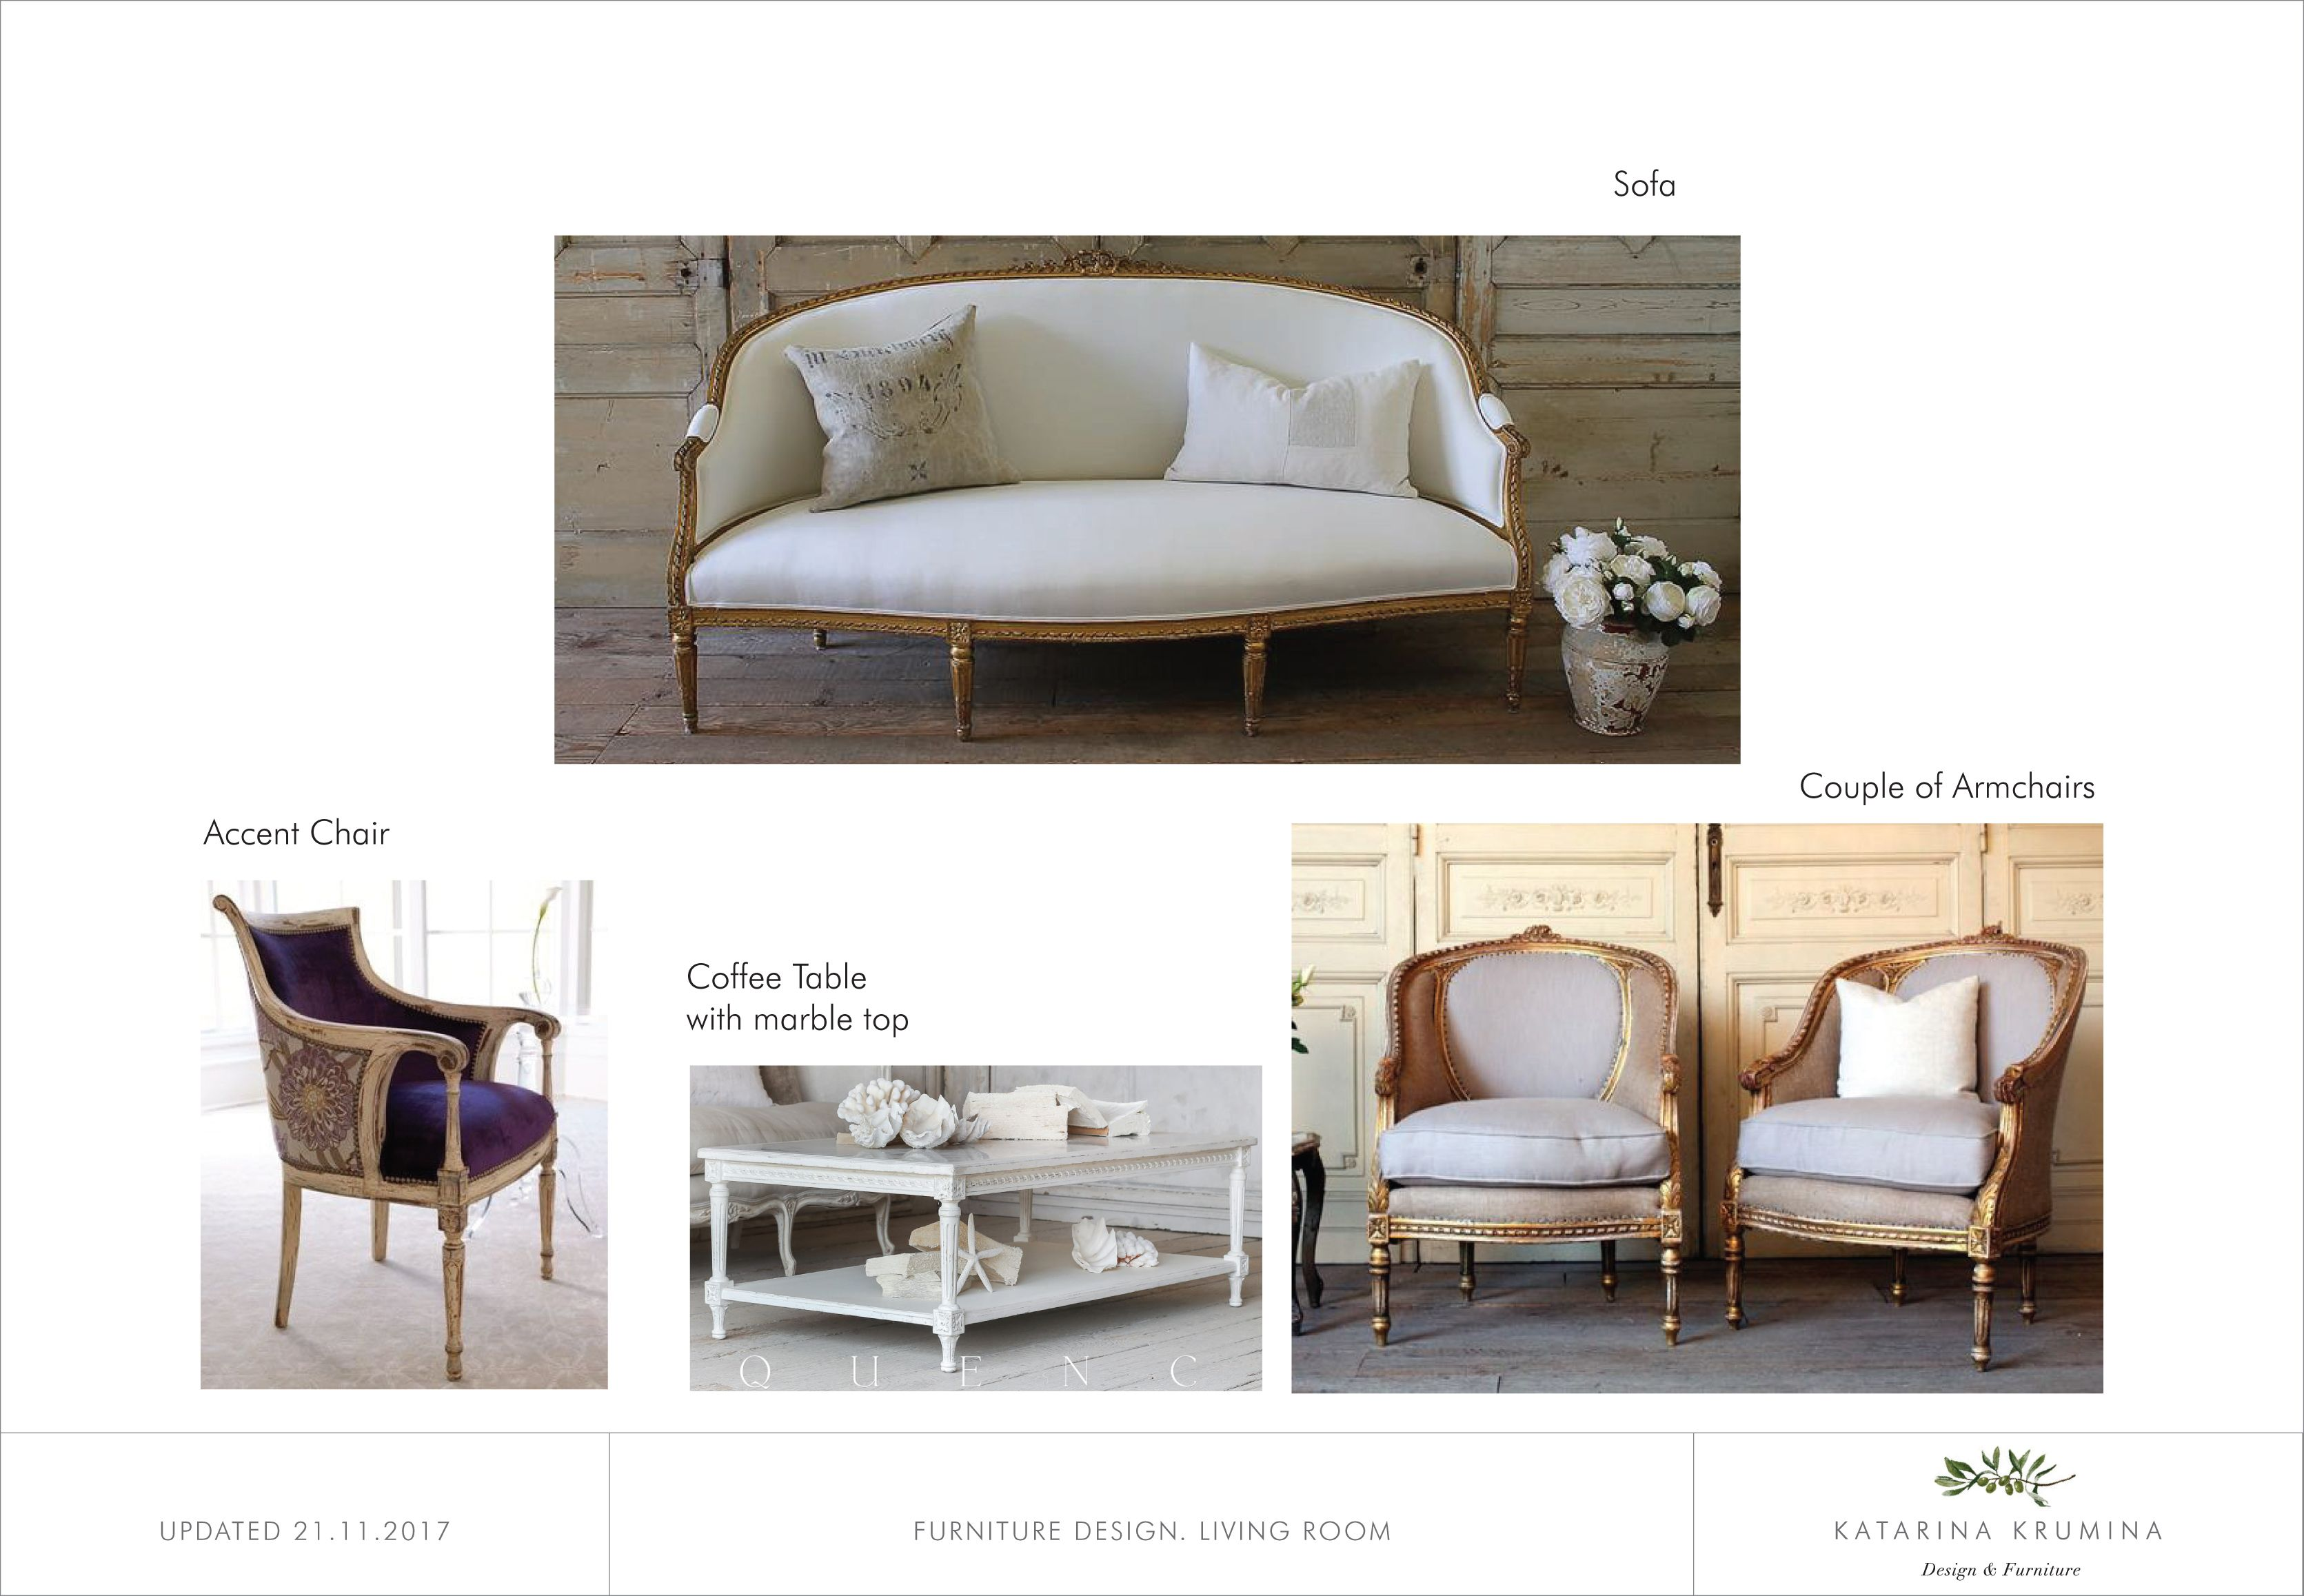 Updated Living Room Furniture selection. More Royal. | K1102 Select ...